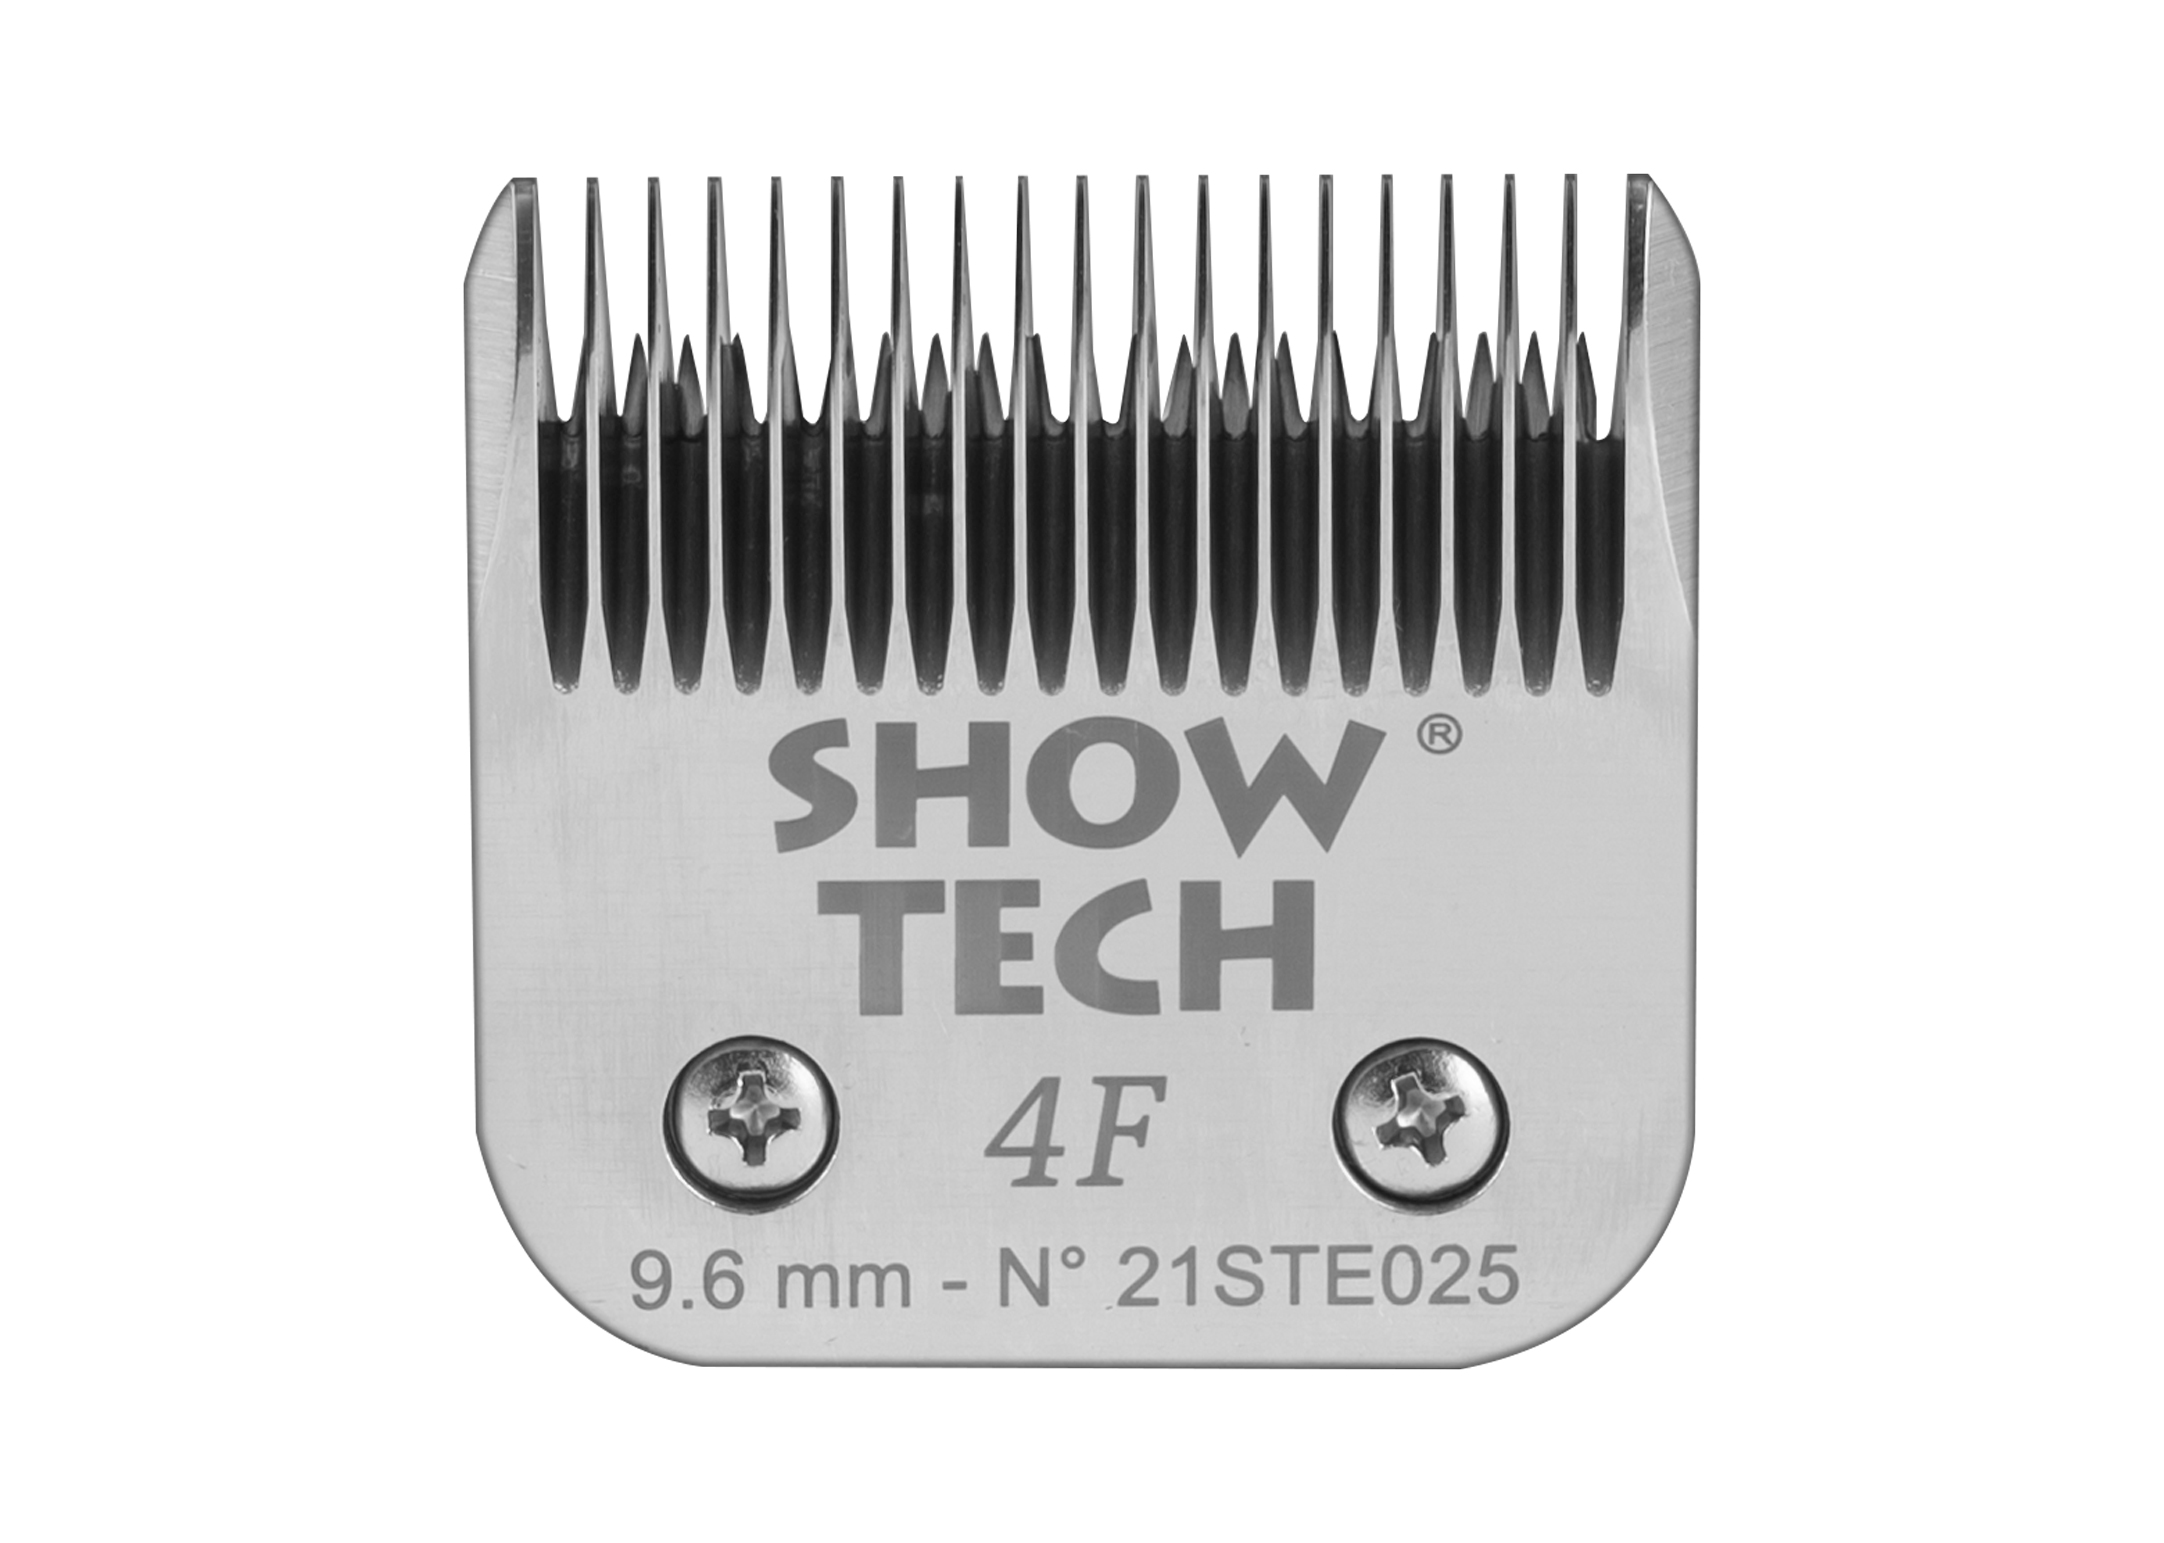 Show Tech Pro Blades snap-on Scheerkop #4F - 9,6mm